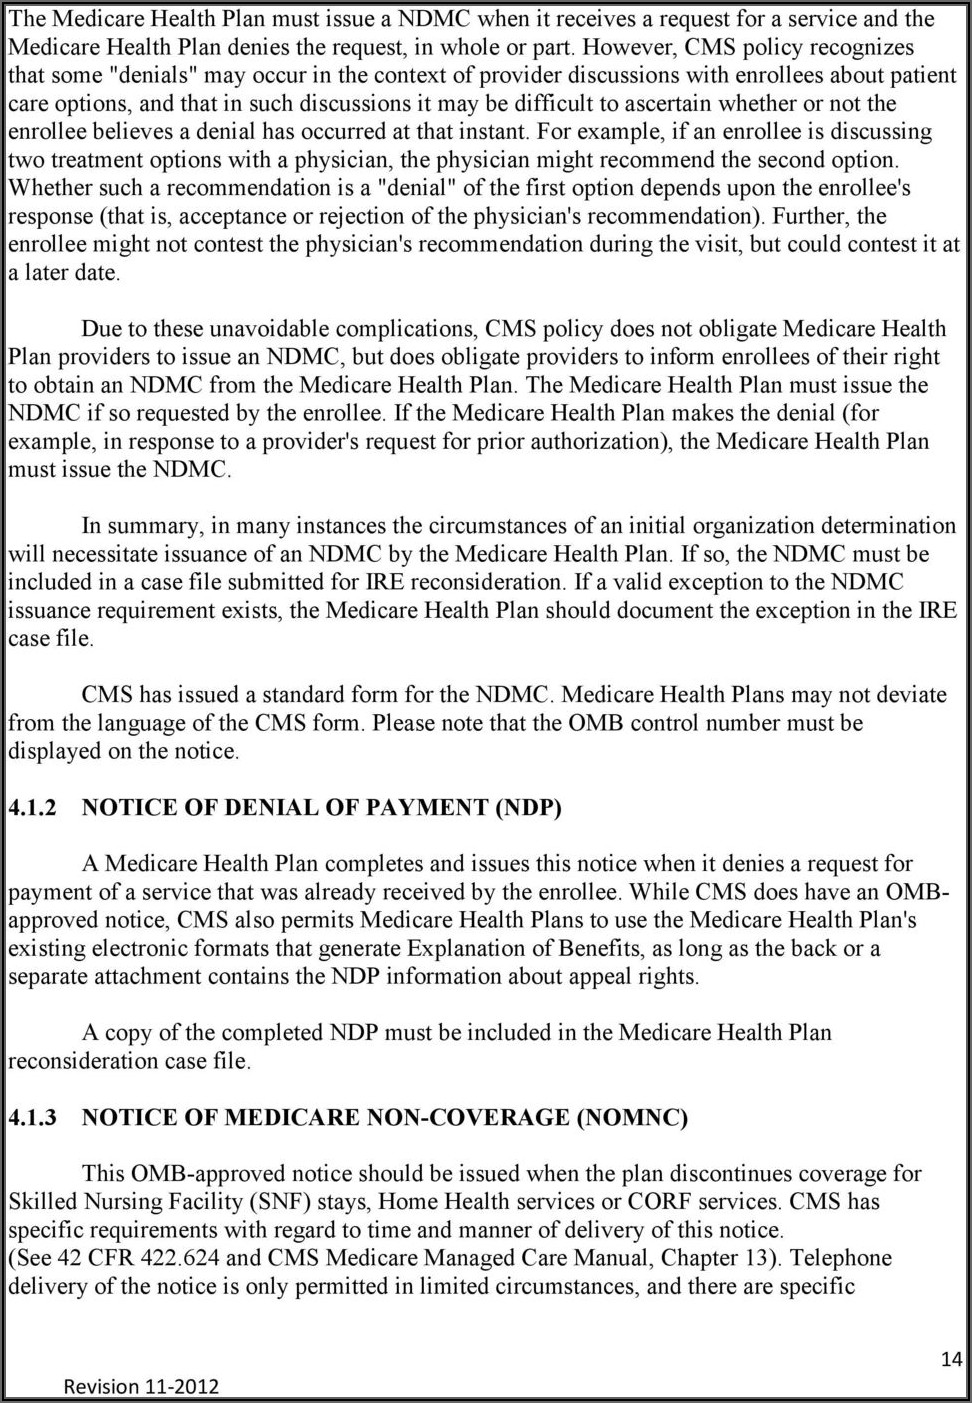 Notice Of Medicare Non Coverage Form For Home Health